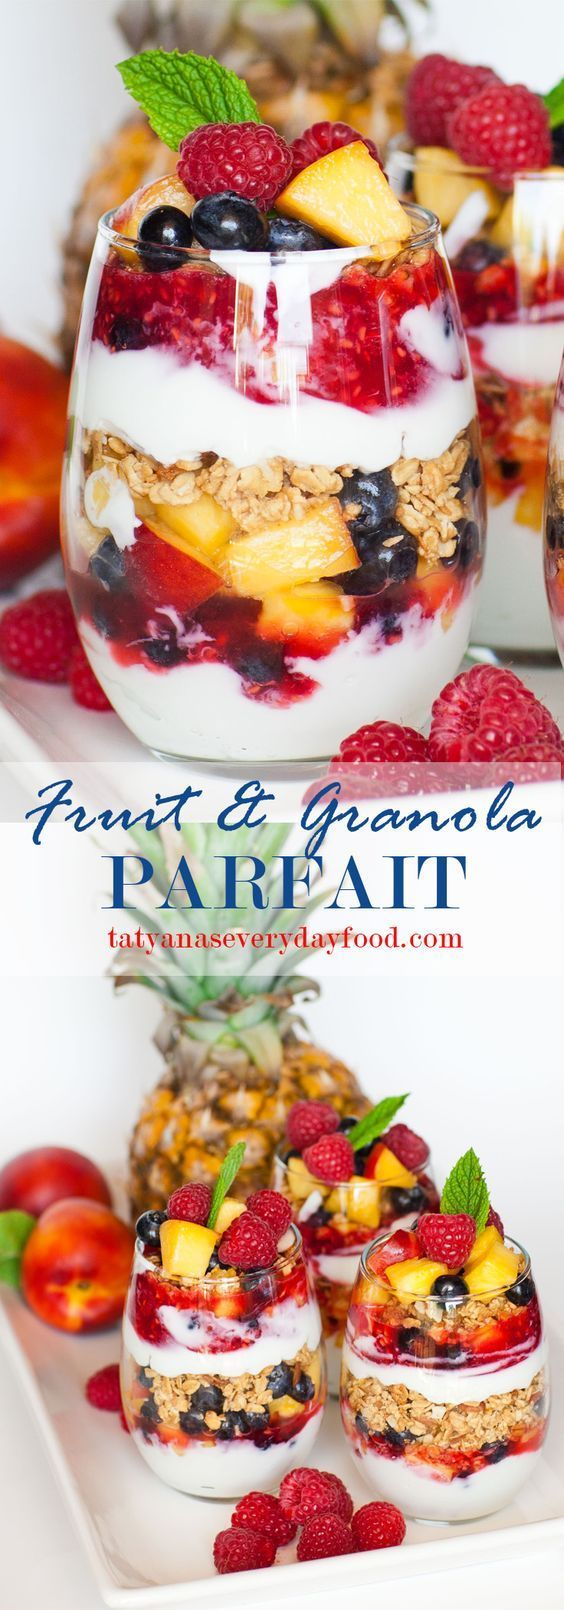 ♡ Pinterest :: Kayleepo ♡ Fruit and Granola Parfait with video recipe - made with Greek yogurt, raspberry sauce, fresh fruit and crunchy granola! {Tatyana's Everyday Food}: